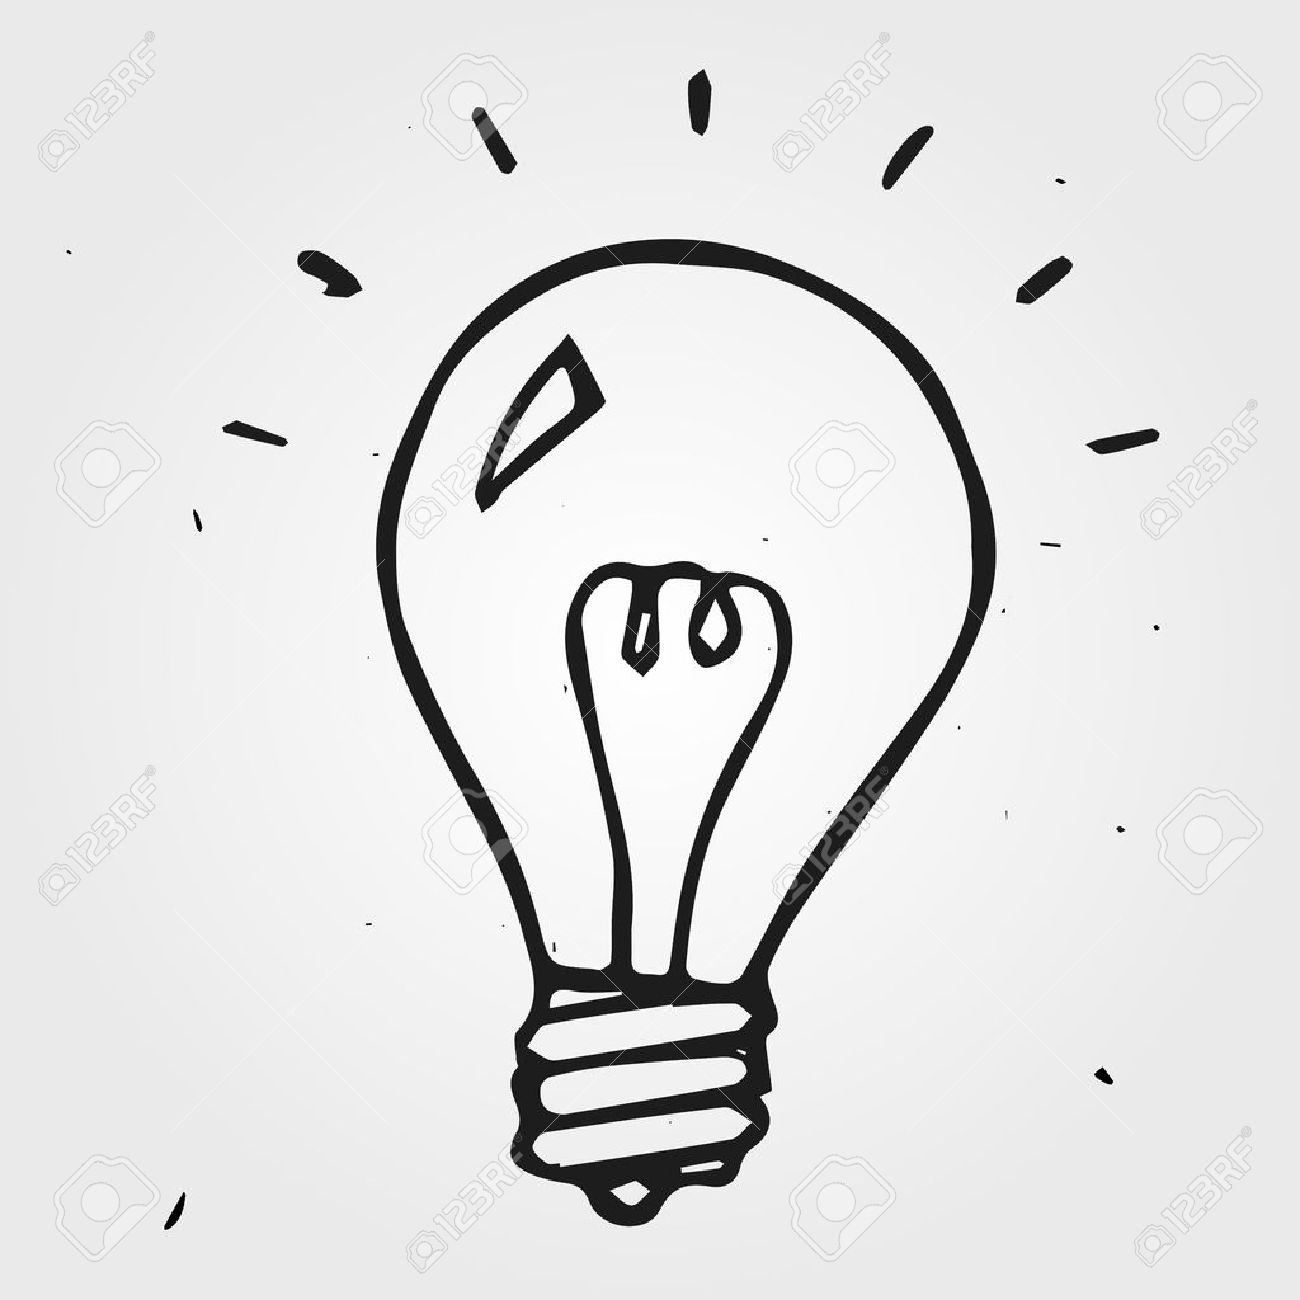 Light Bulb Hand Drawn, Doodle Icon Royalty Free Cliparts, Vectors ... for Lamp Bulb Drawing  174mzq